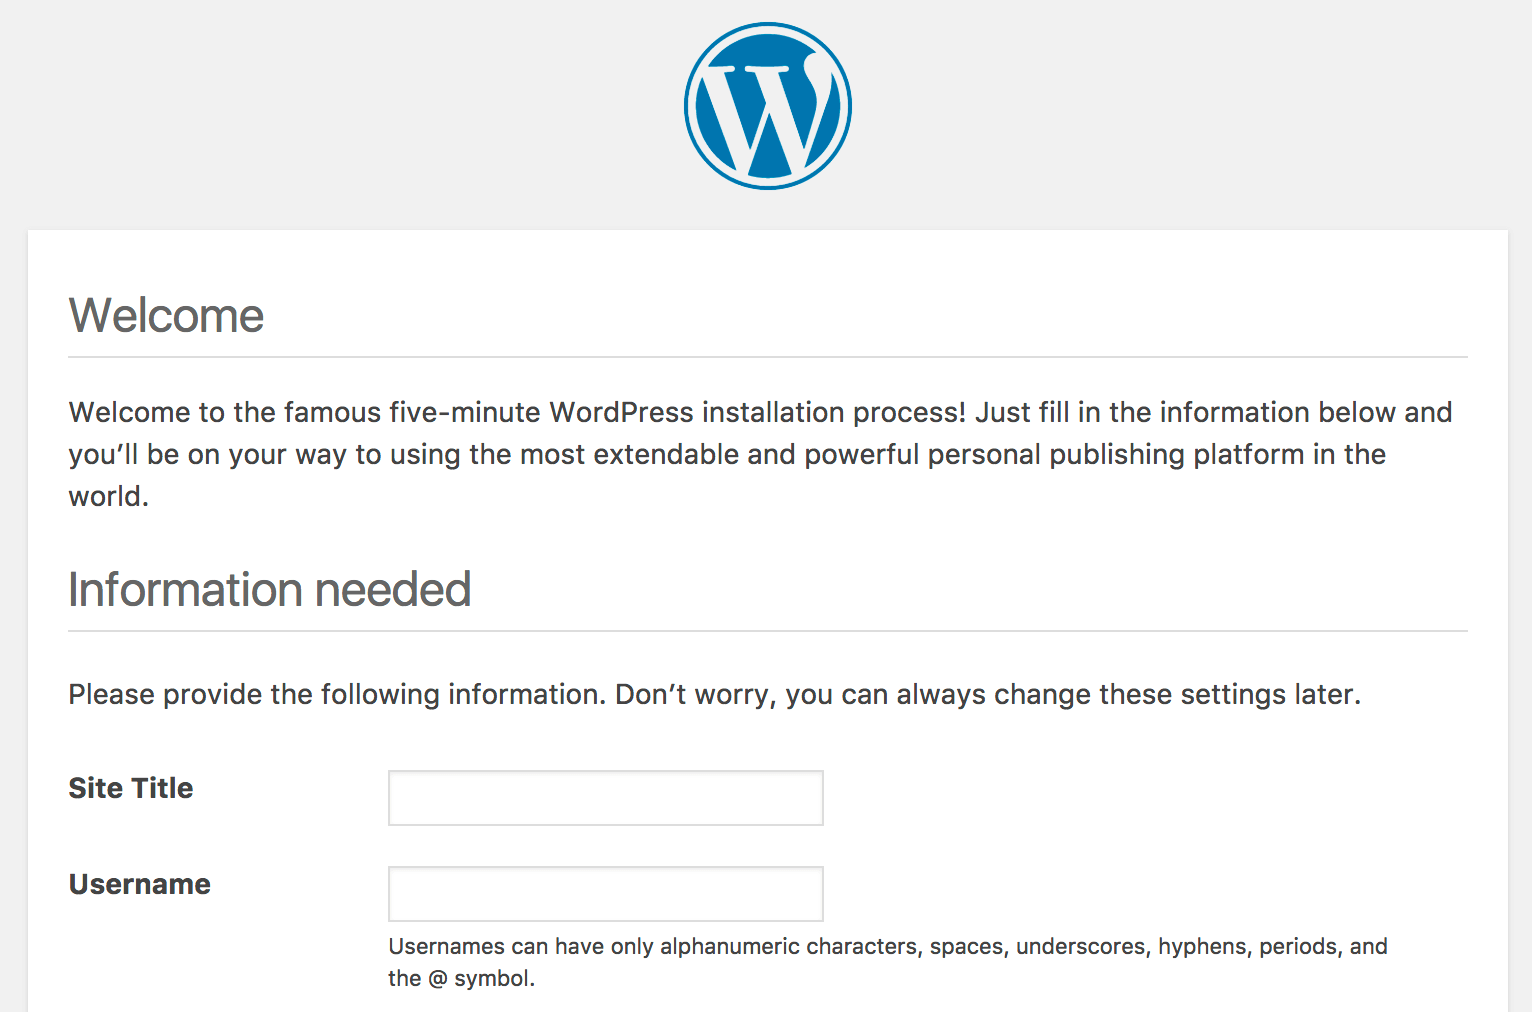 WordPress installation process